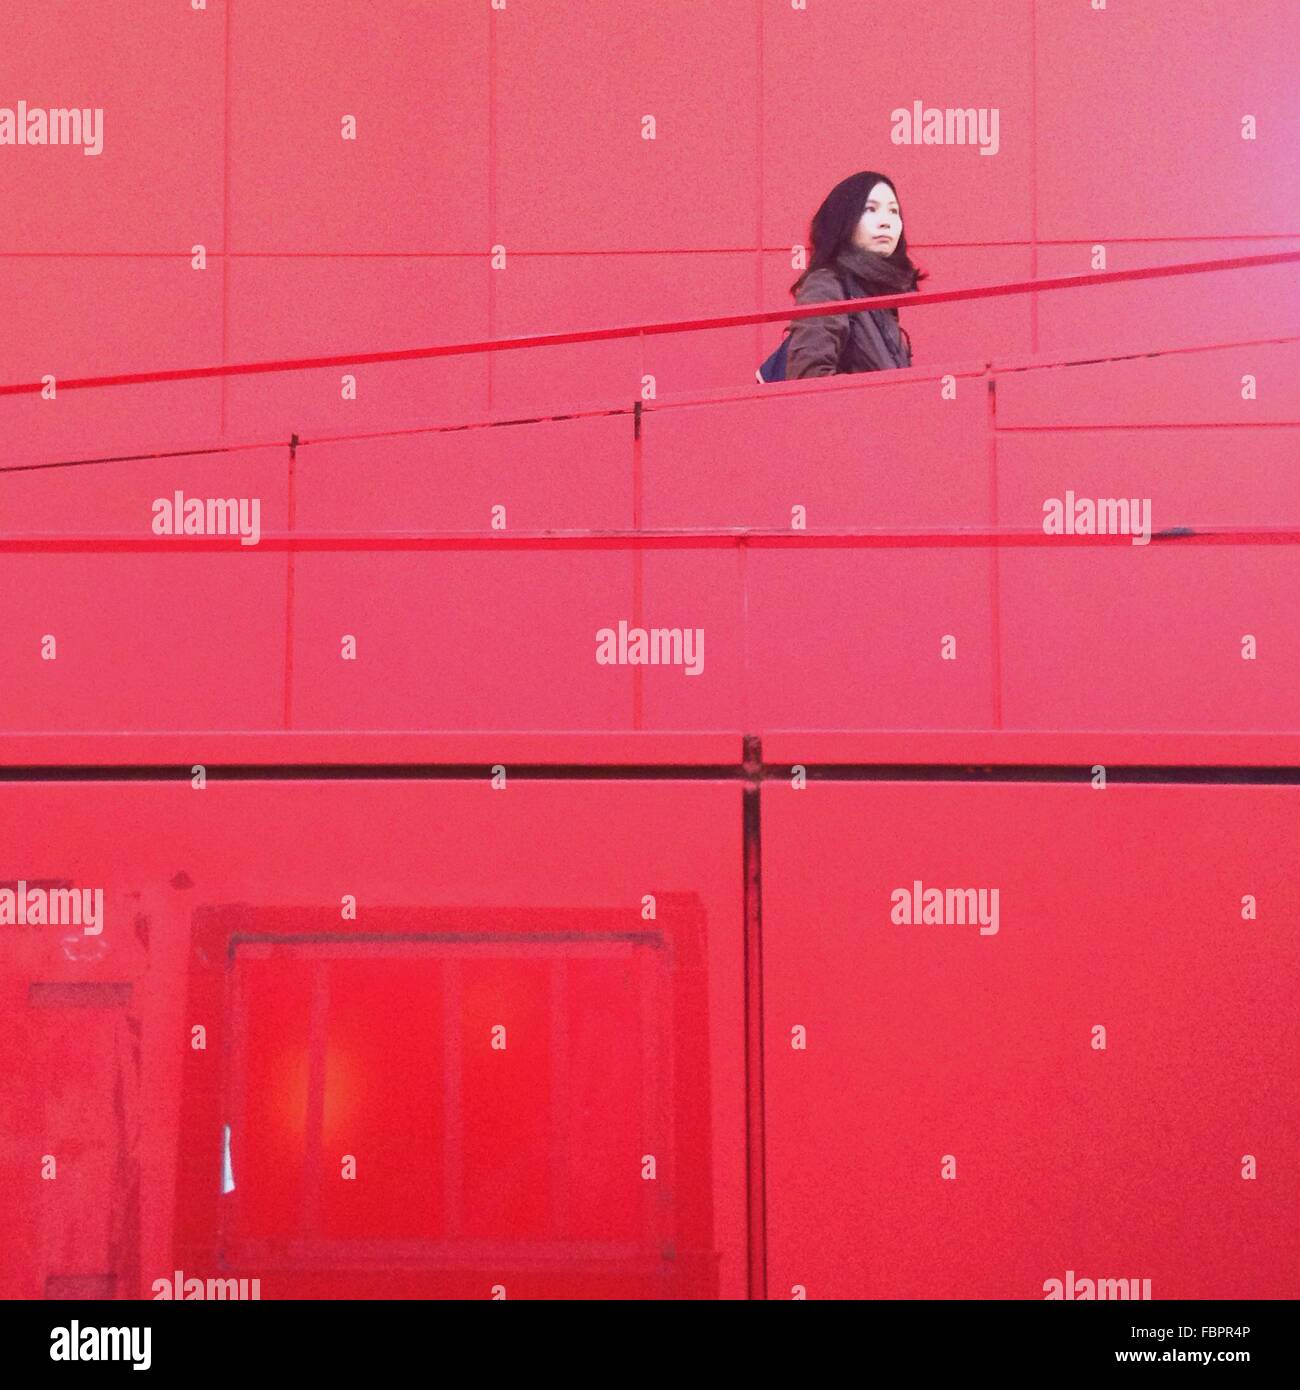 Woman On Red Stairway - Stock Image